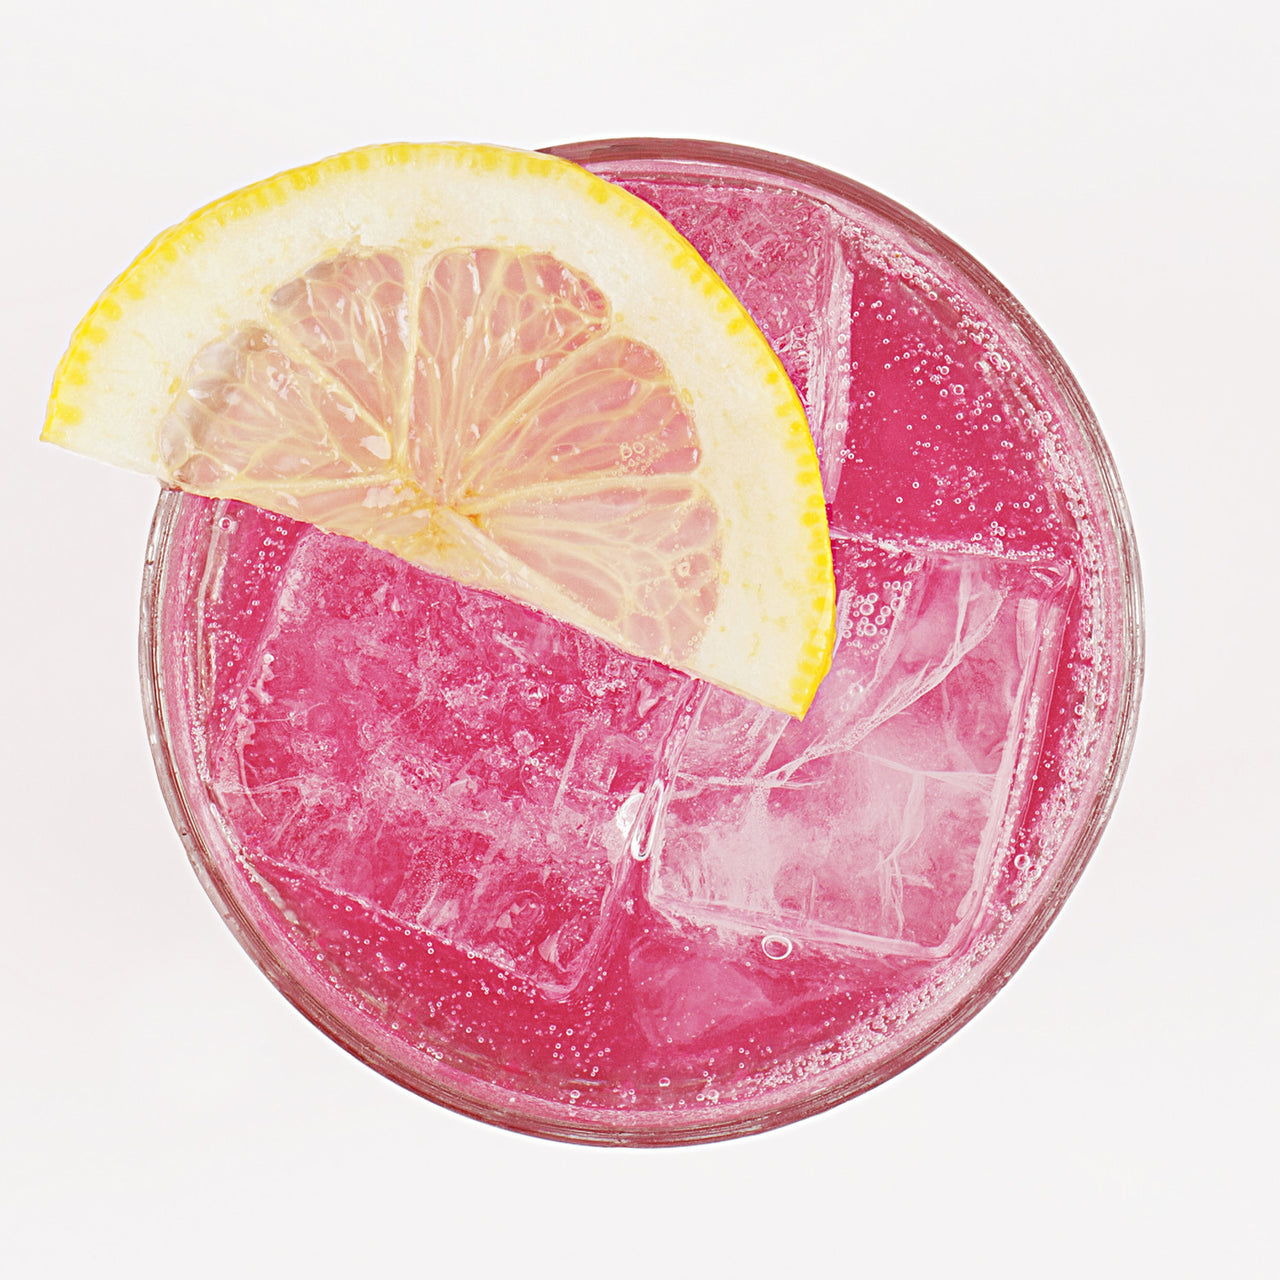 Spiced Lemon & Rose lemonade Tray of 12